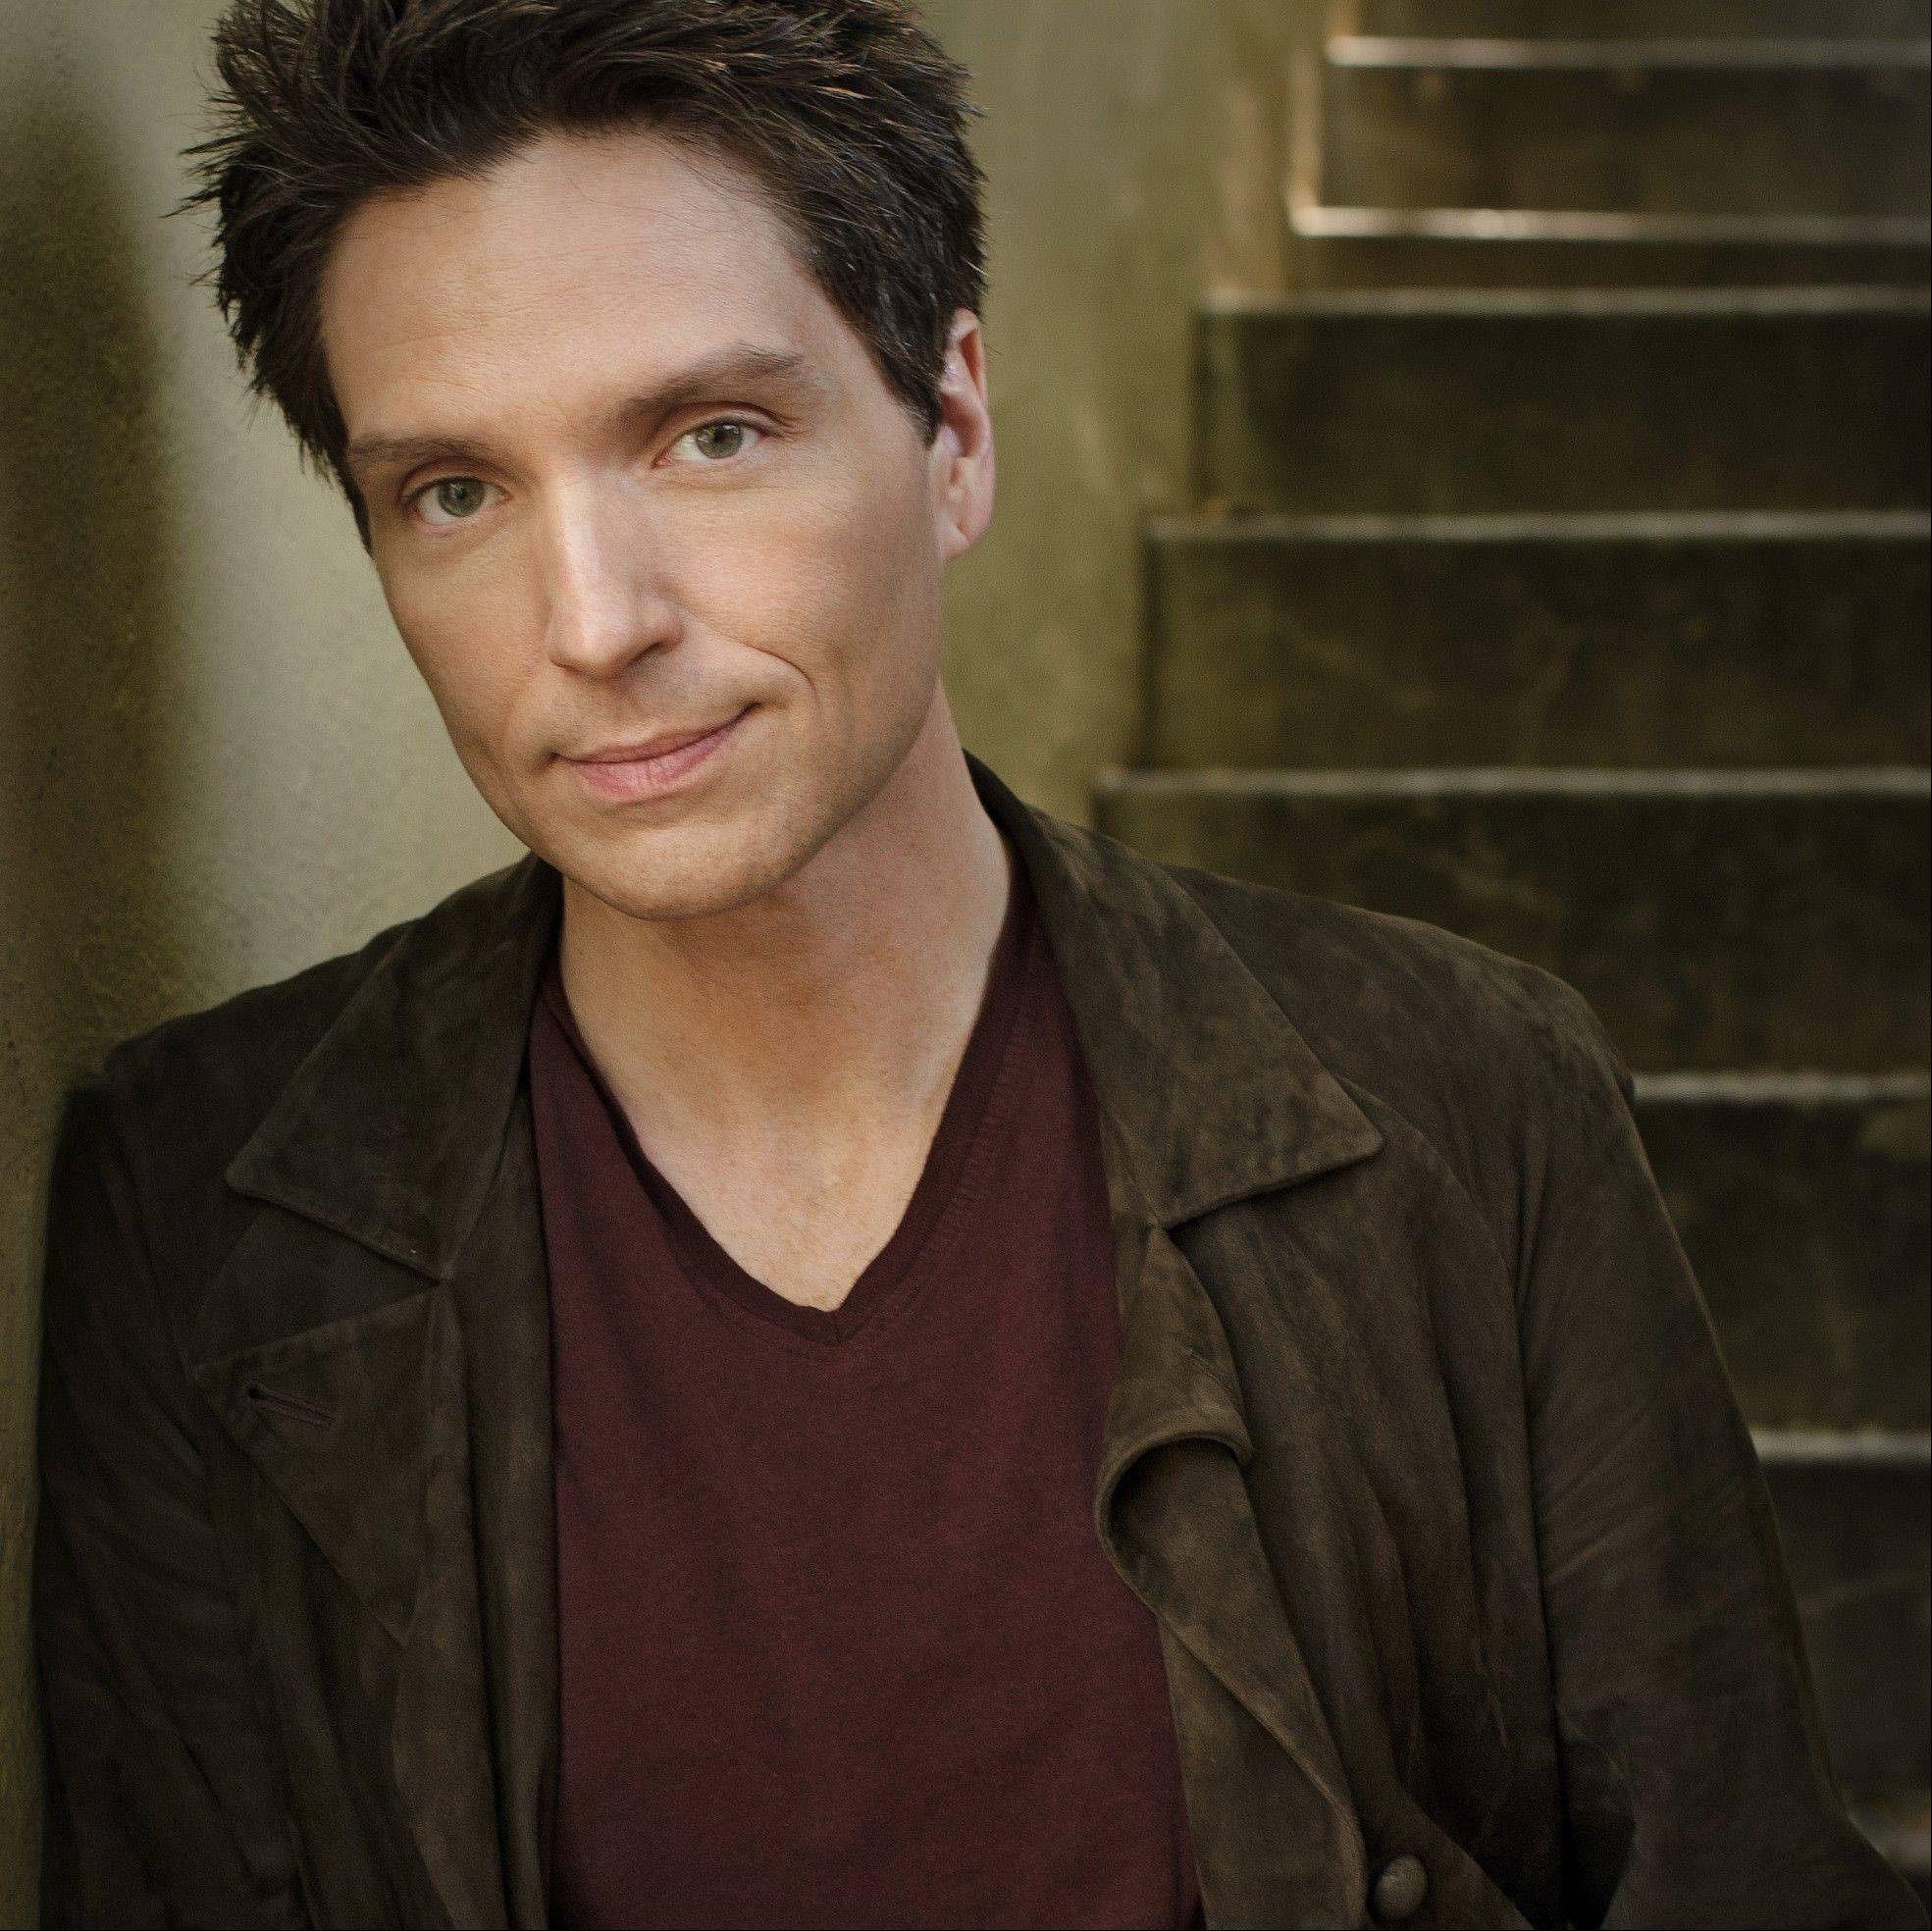 Singer/songwriter Richard Marx performs at North Central College's Wentz Concert Hall in Naperville on Friday, Nov. 1.